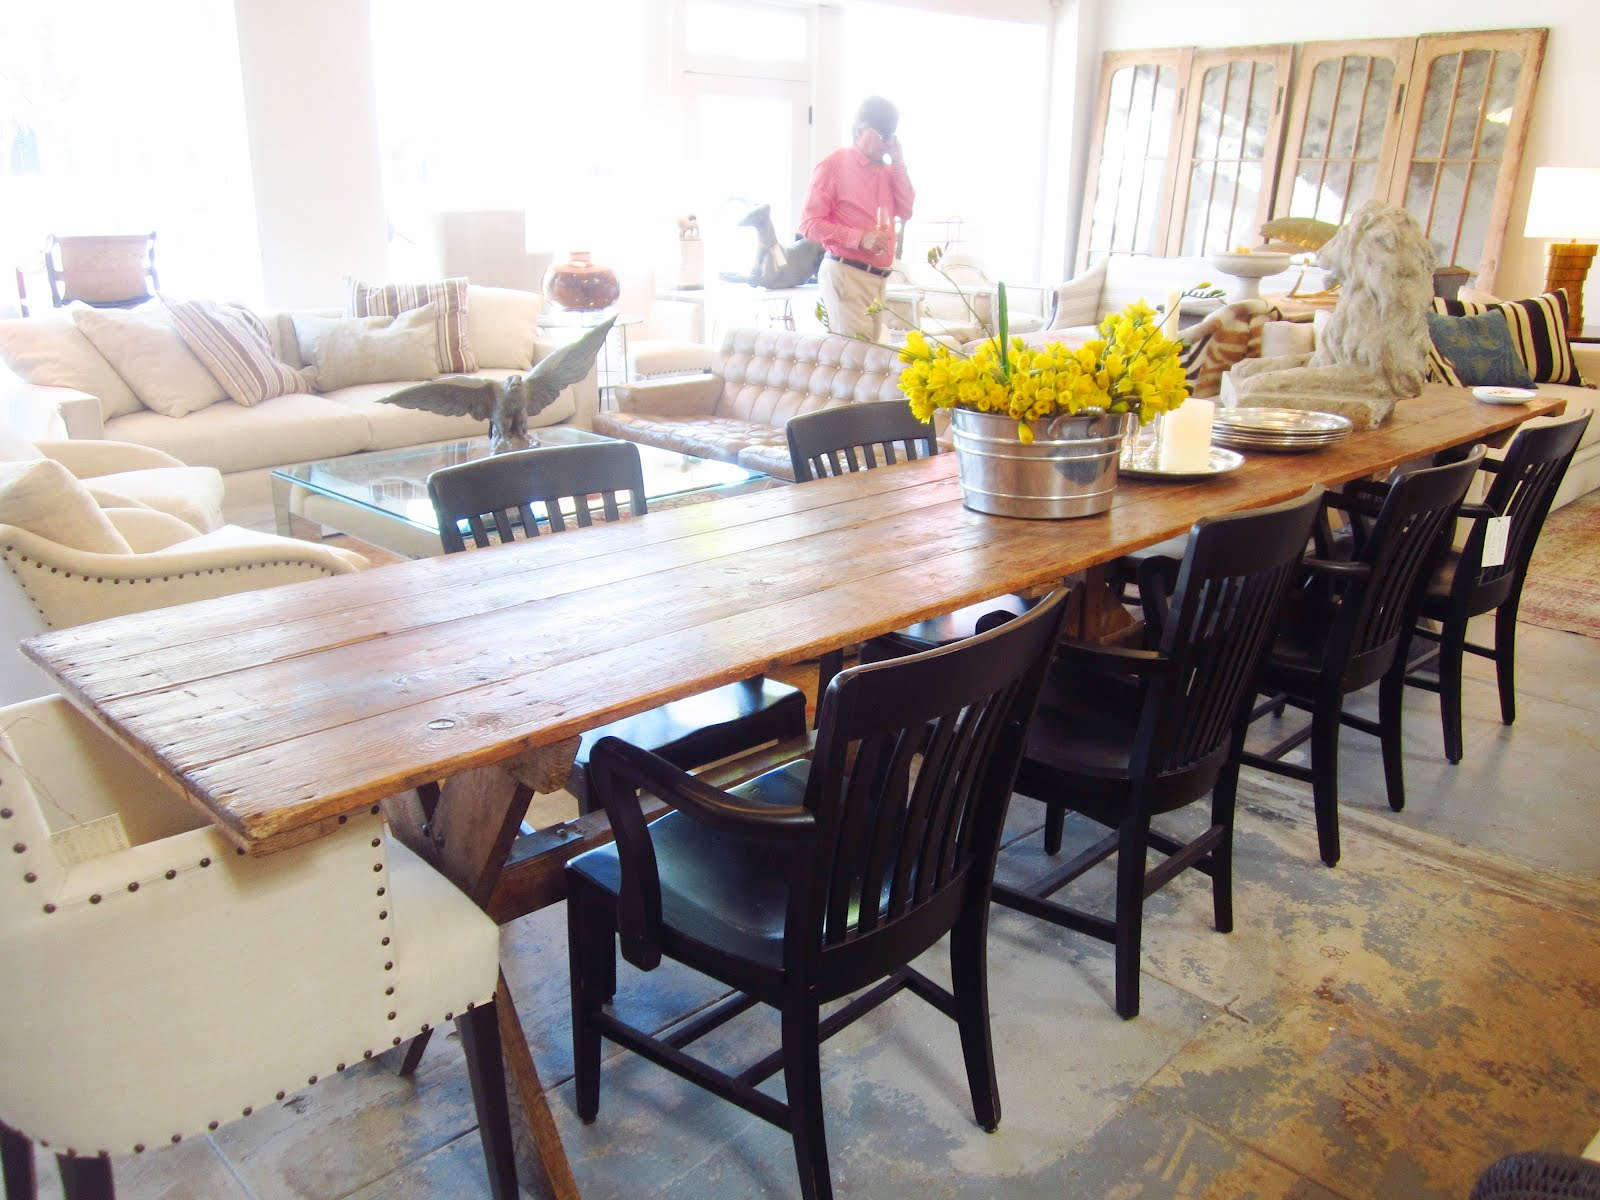 Magnificent Long Dining Table and Chairs 1600 x 1200 · 229 kB · jpeg